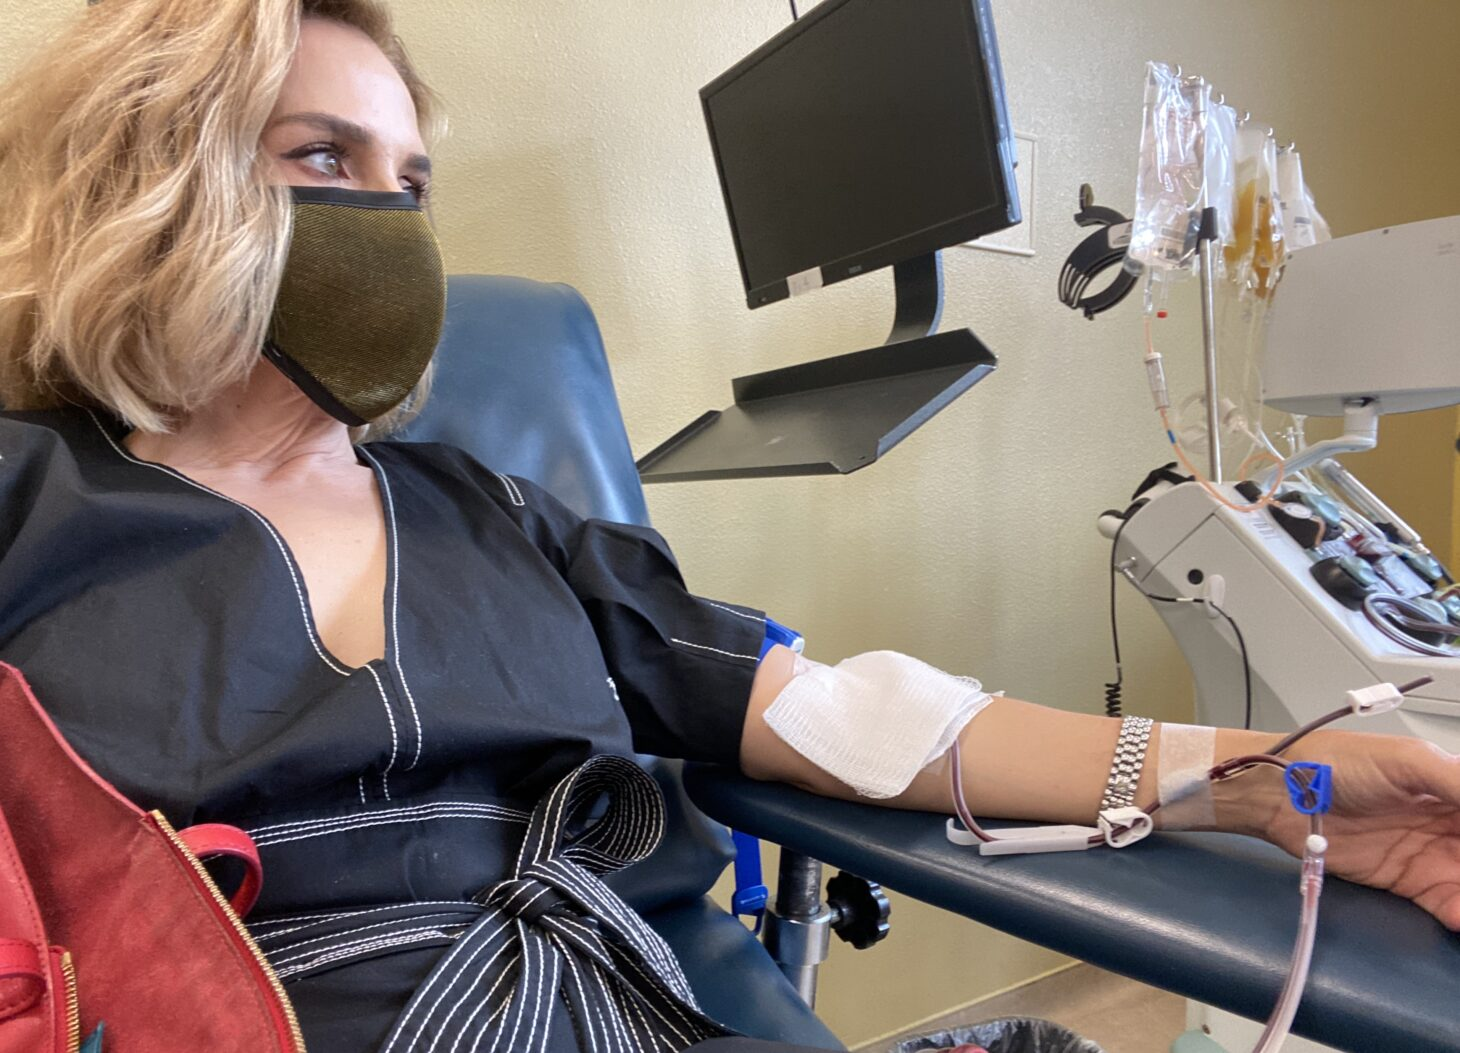 """If it can help all of us beat this thing sooner rather than later, I believe we absolutely need to do it,"" Foster said. ""If you've gone through COVID-19, it's a responsibility to give plasma. I think it could be important to all of us."""